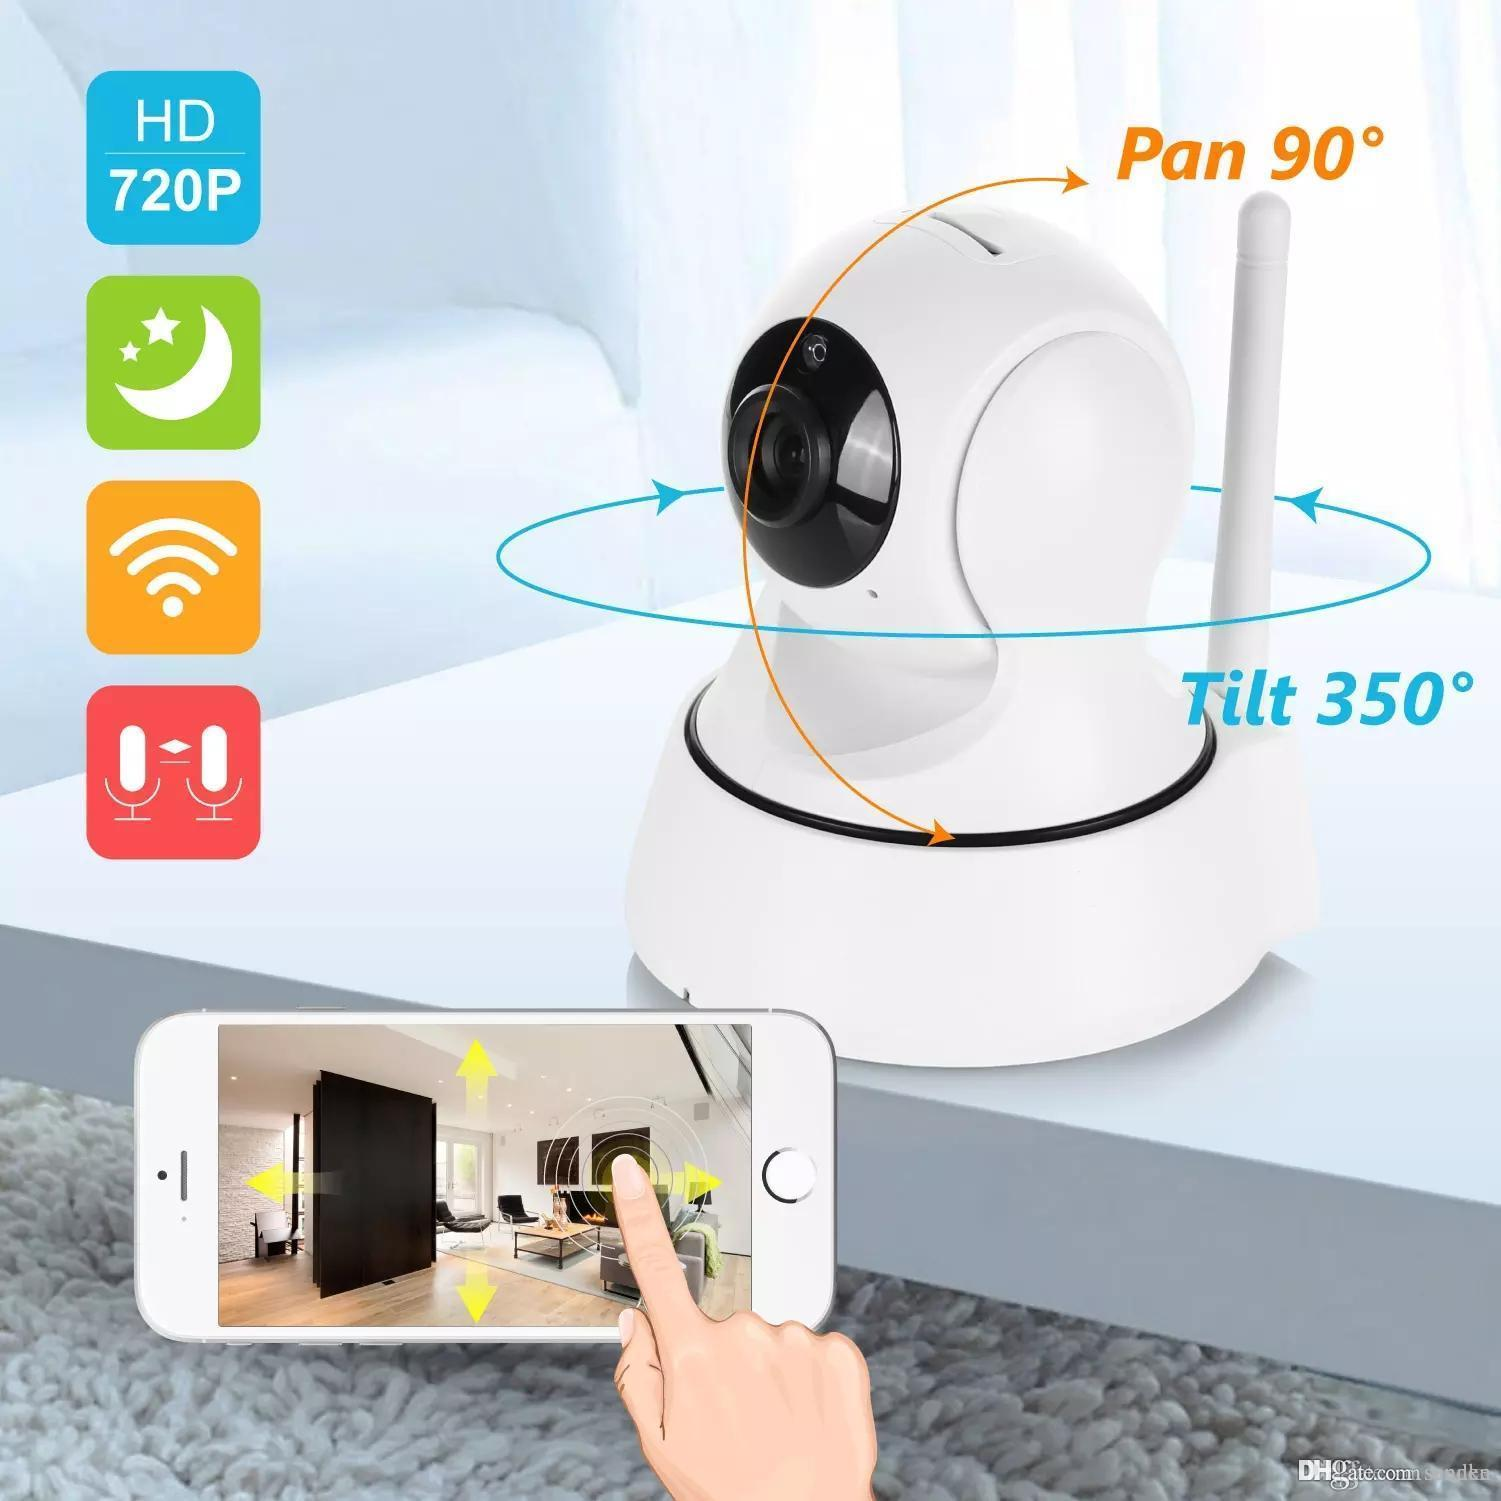 Hot 720P 960P 1080P SANNCE Home Security Wireless Smart IP Camera  Surveillance Camera Wifi 360 Rotating NightVision CCTV Camera Baby Monitor  UK 2019 From ... a82fbf0d7